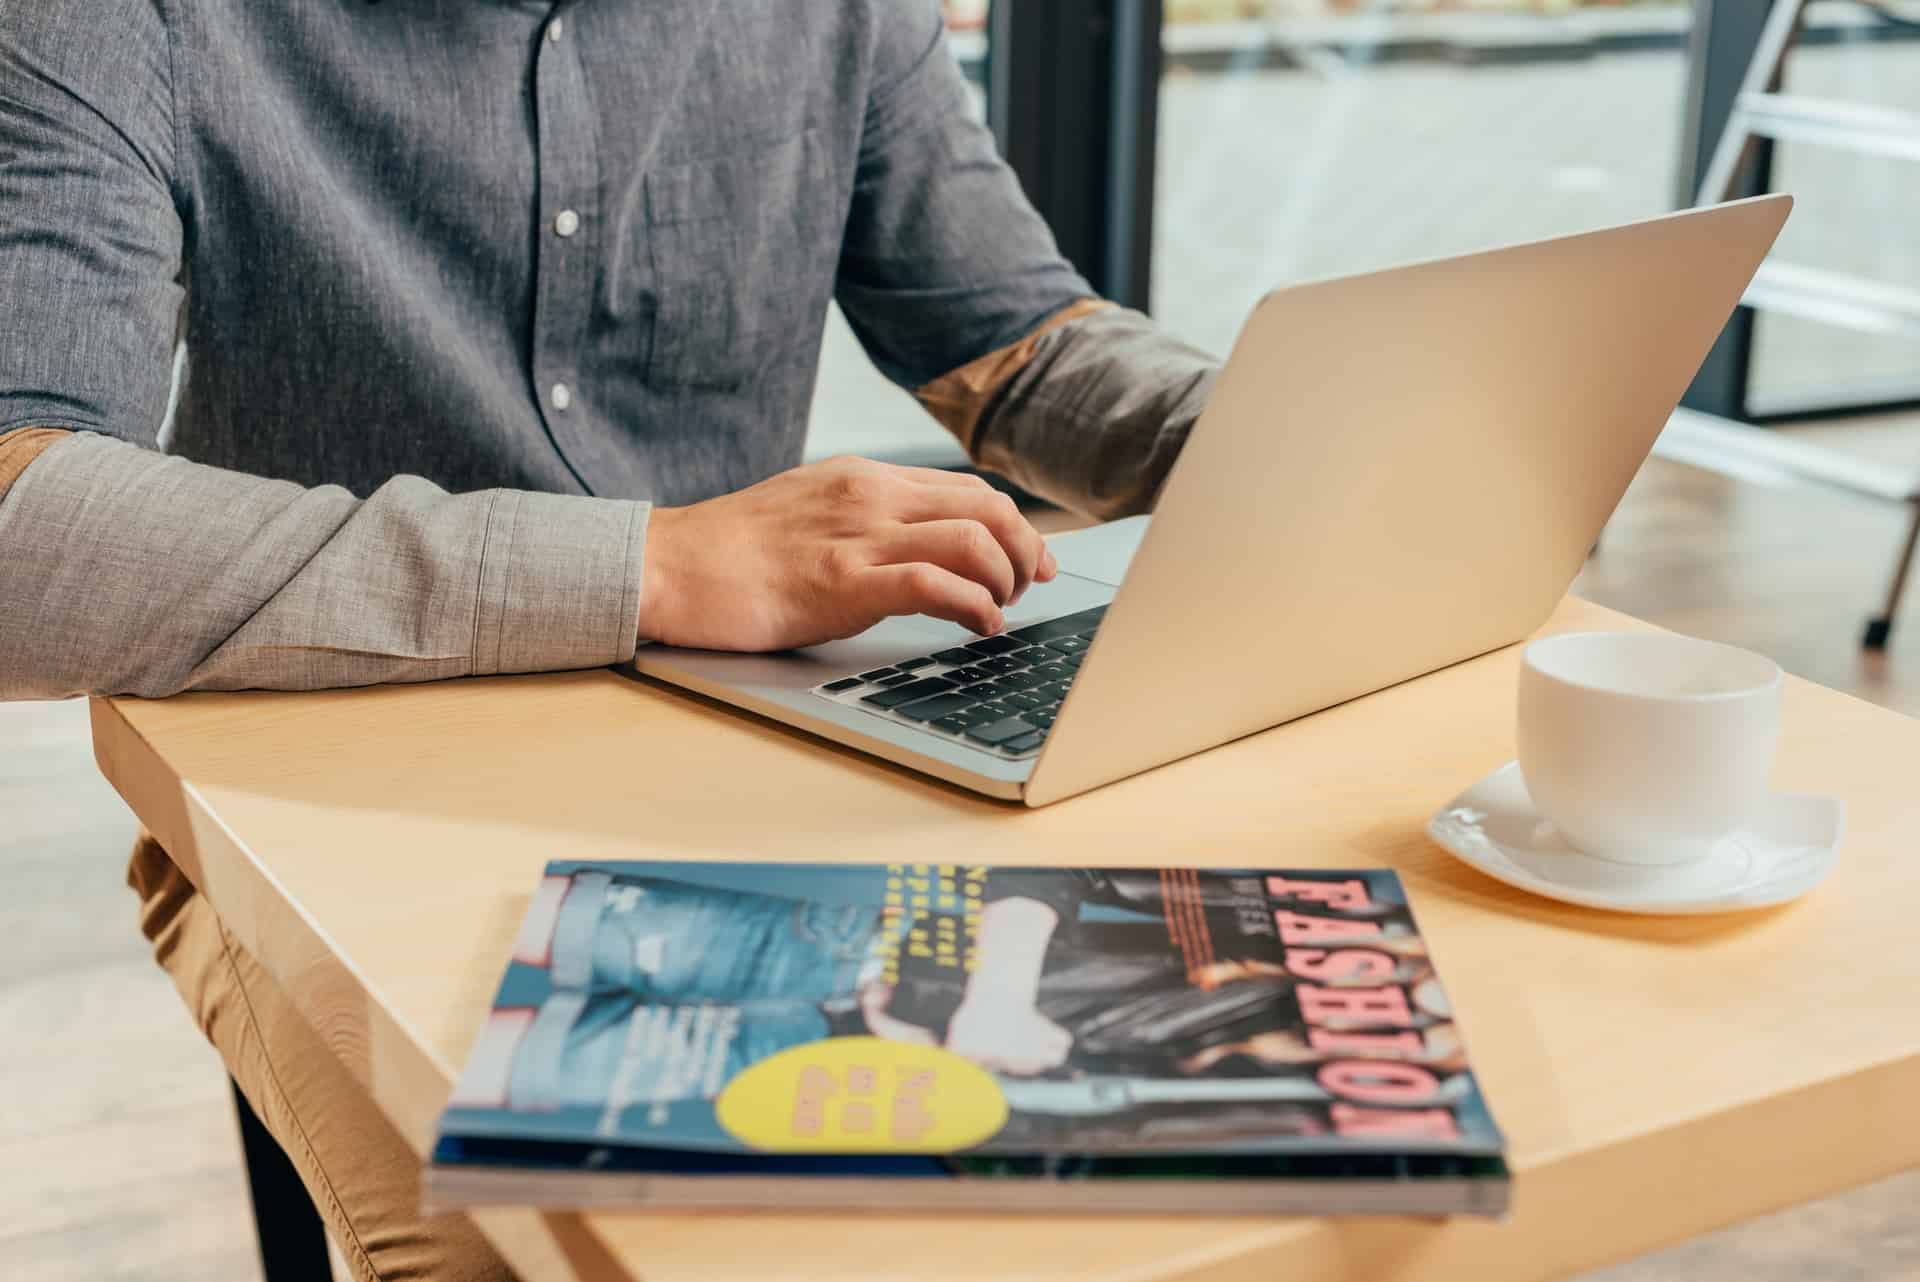 Combining digital and traditional media with a digital content writer